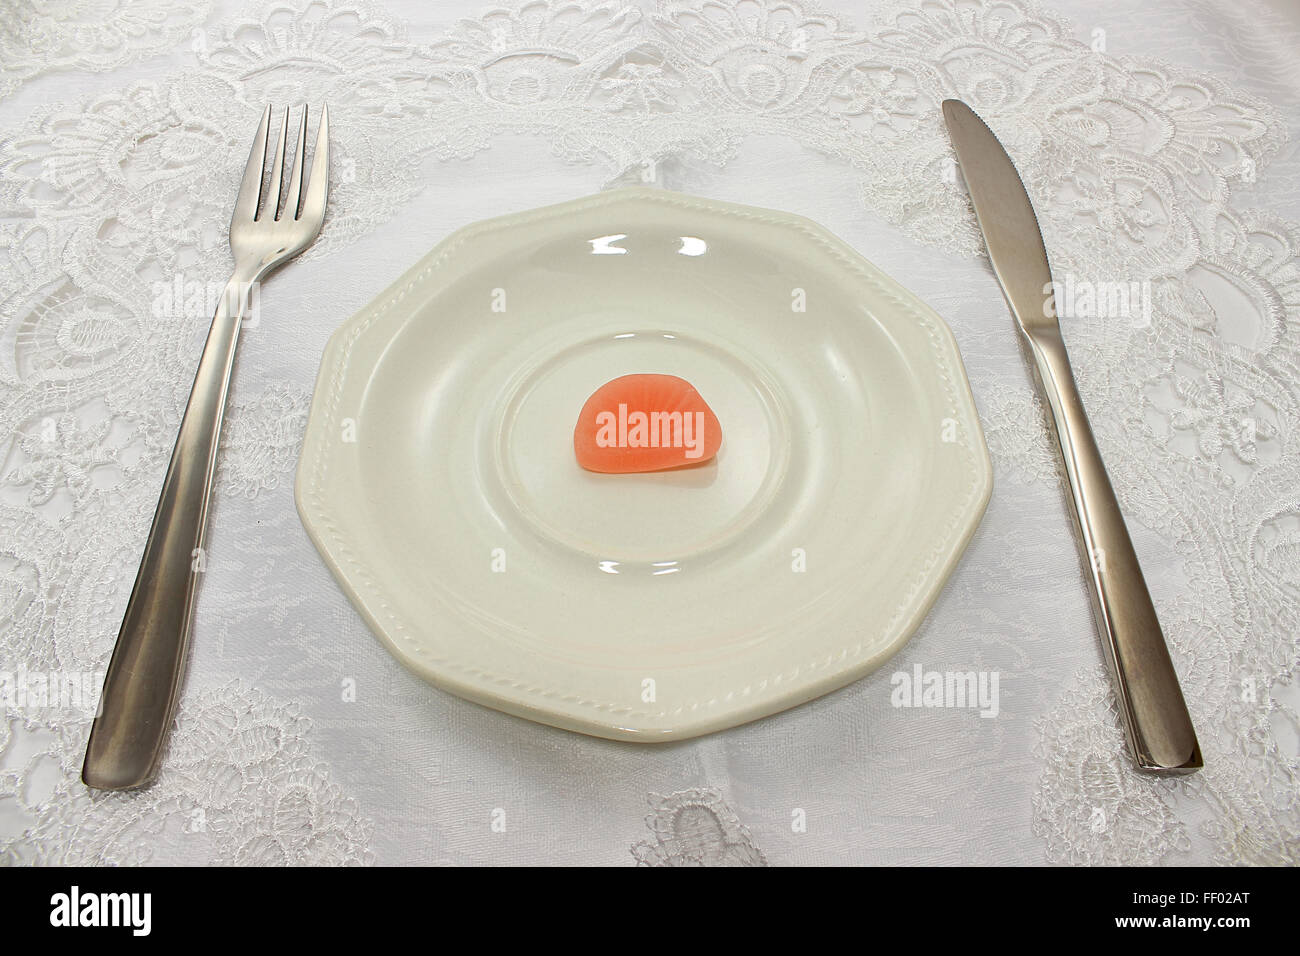 Candy on plate - Stock Image